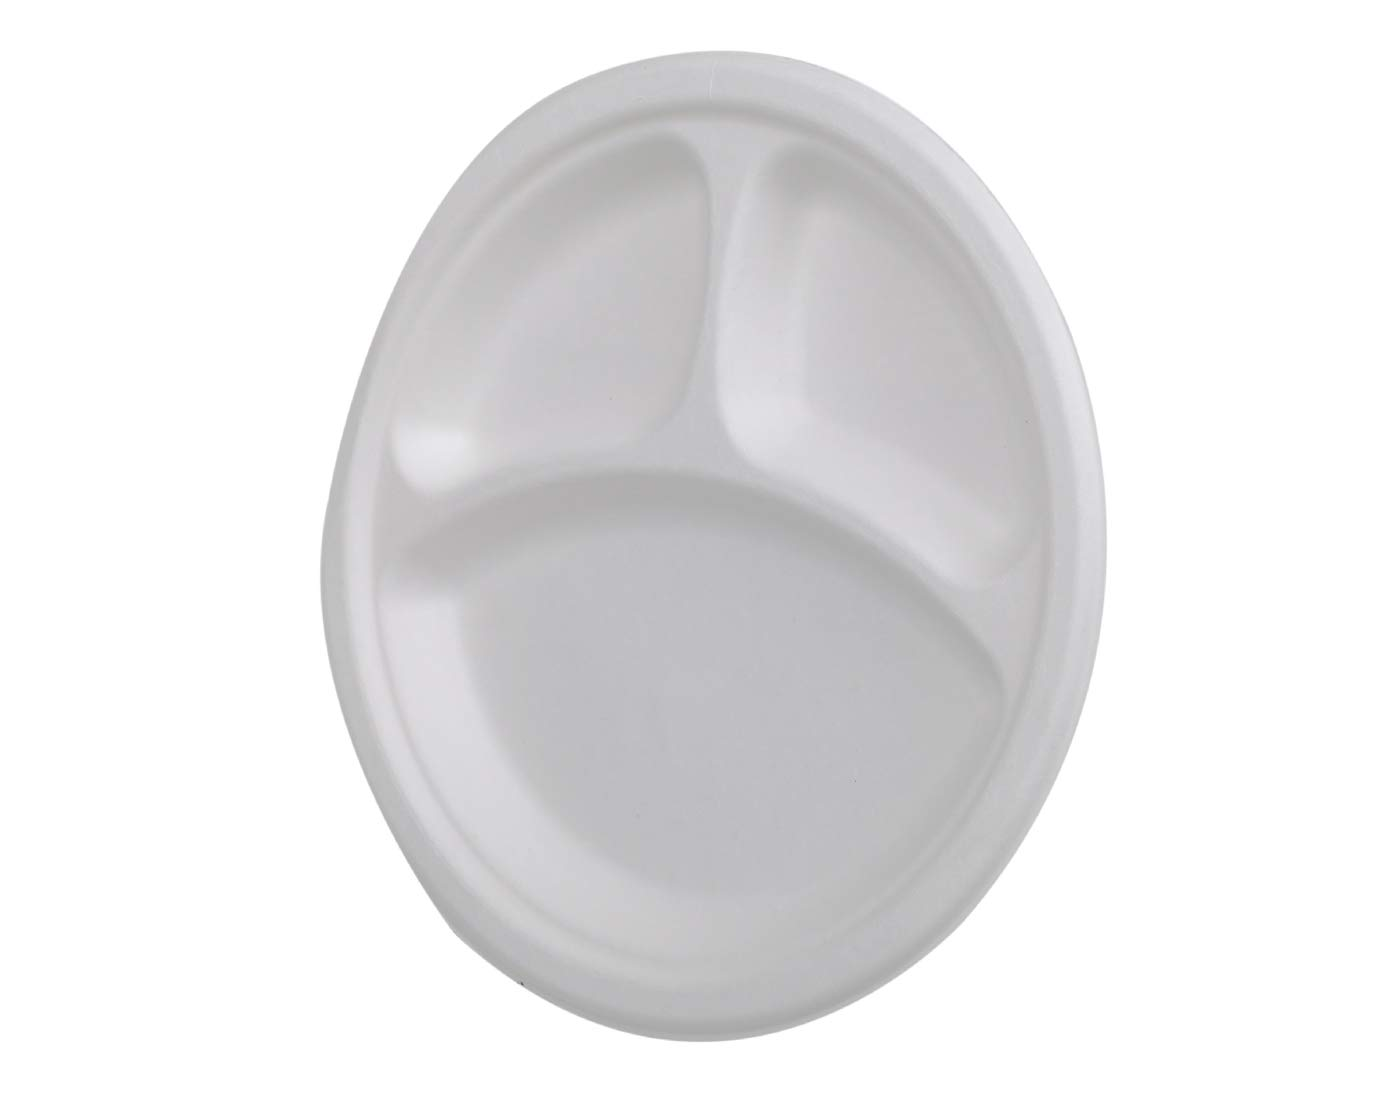 Buy ECORITI 10-inch Round 3 CP Disposable Biodegradable Sugarcane Bagasse Plate (White)- Pack of 25 Online at Low Prices in India - Amazon.in